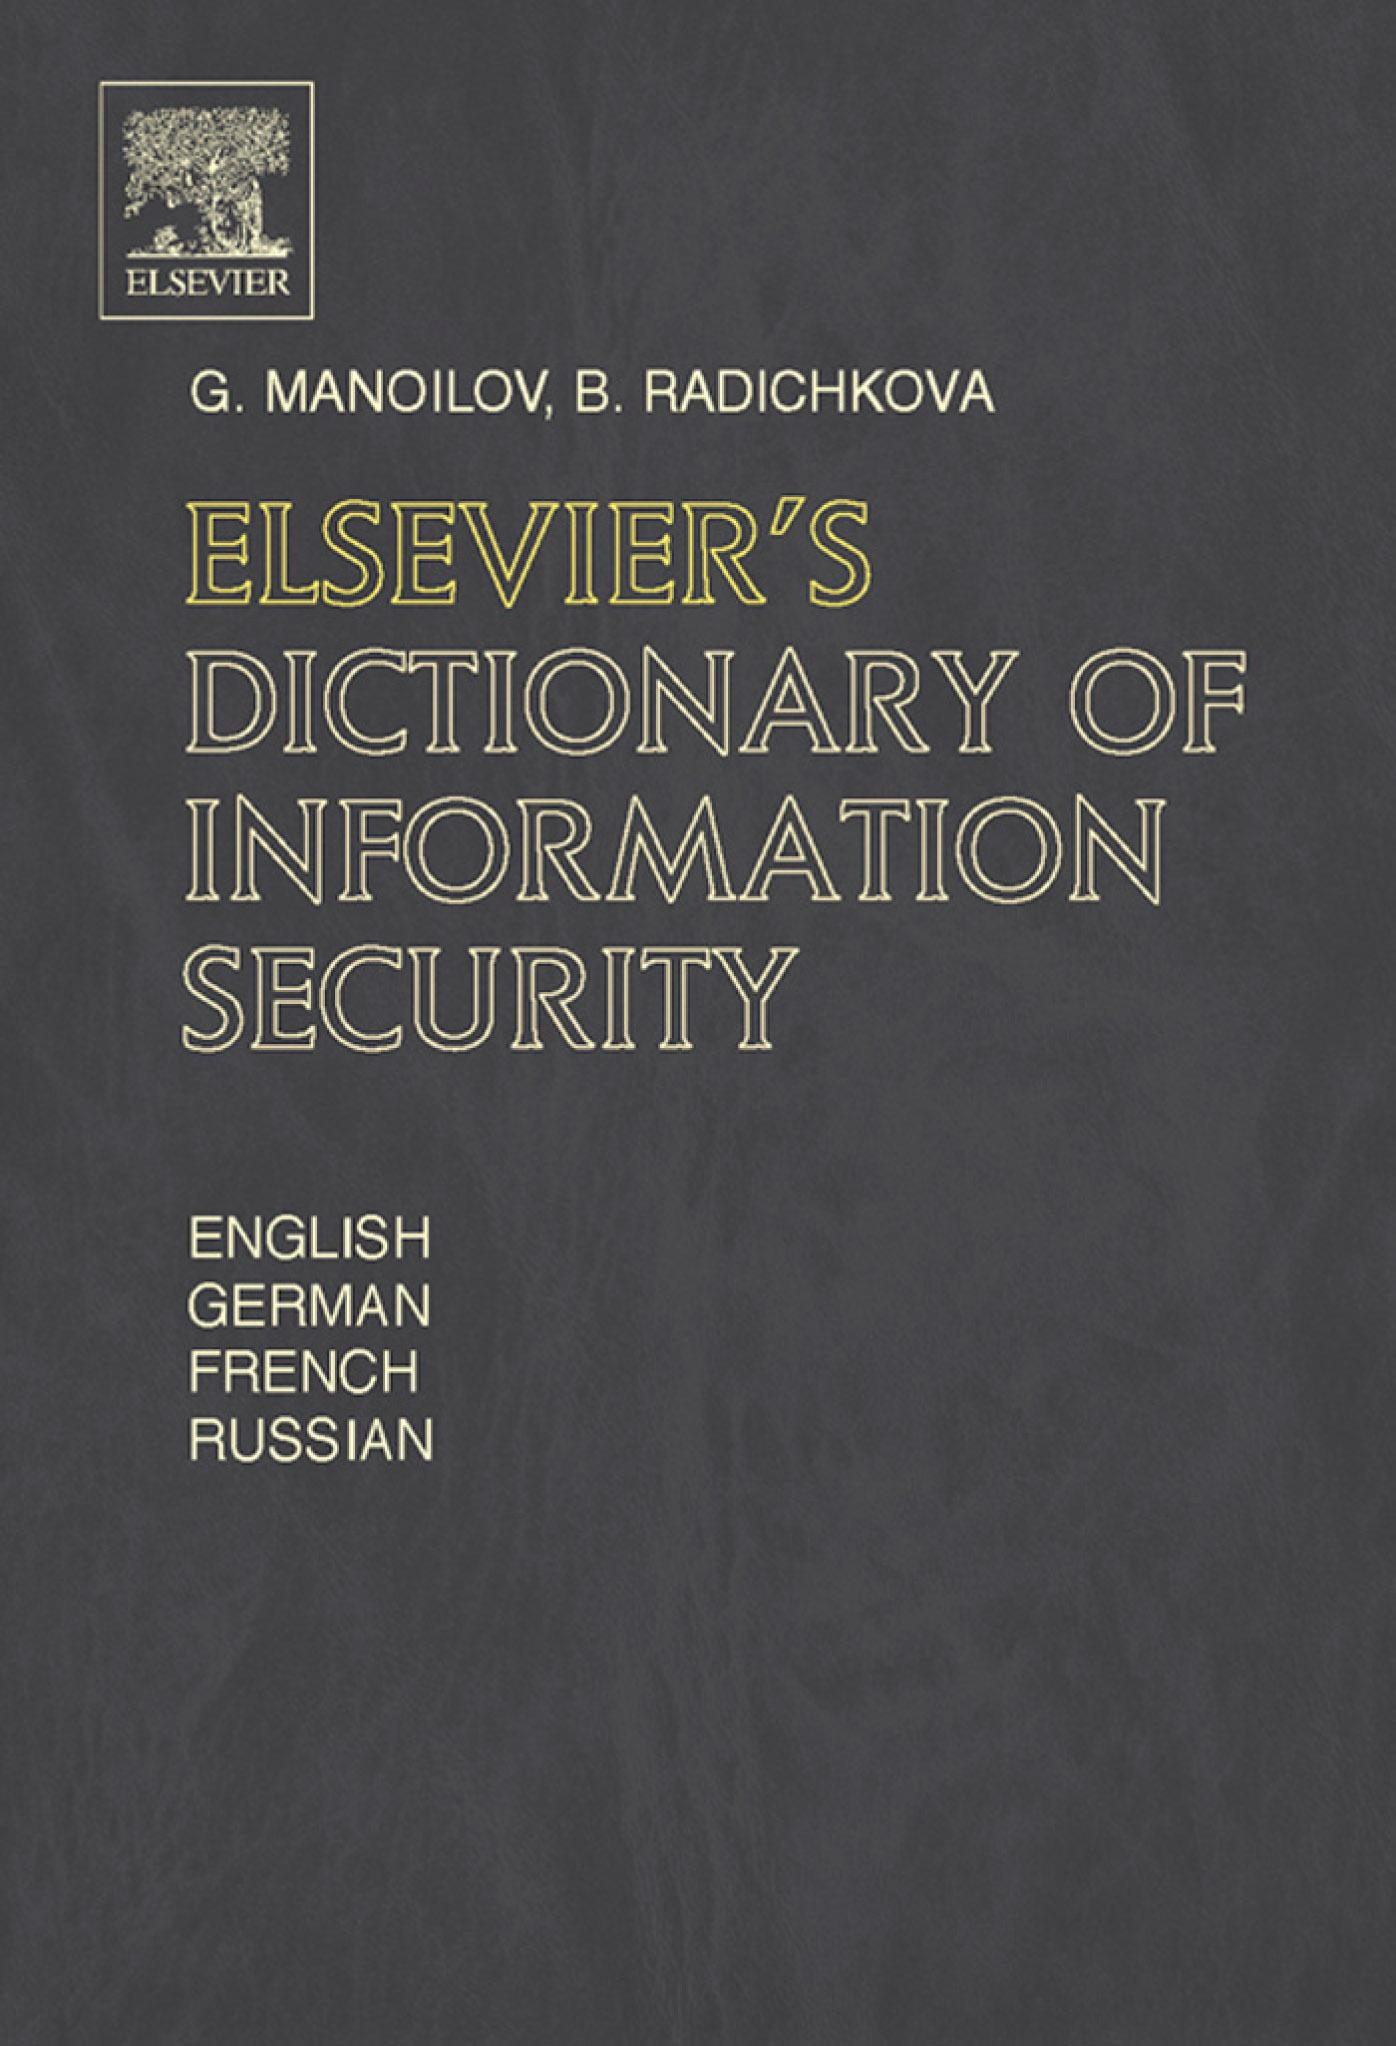 Elsevier's Dictionary of Information Security By: Manoilov, G.